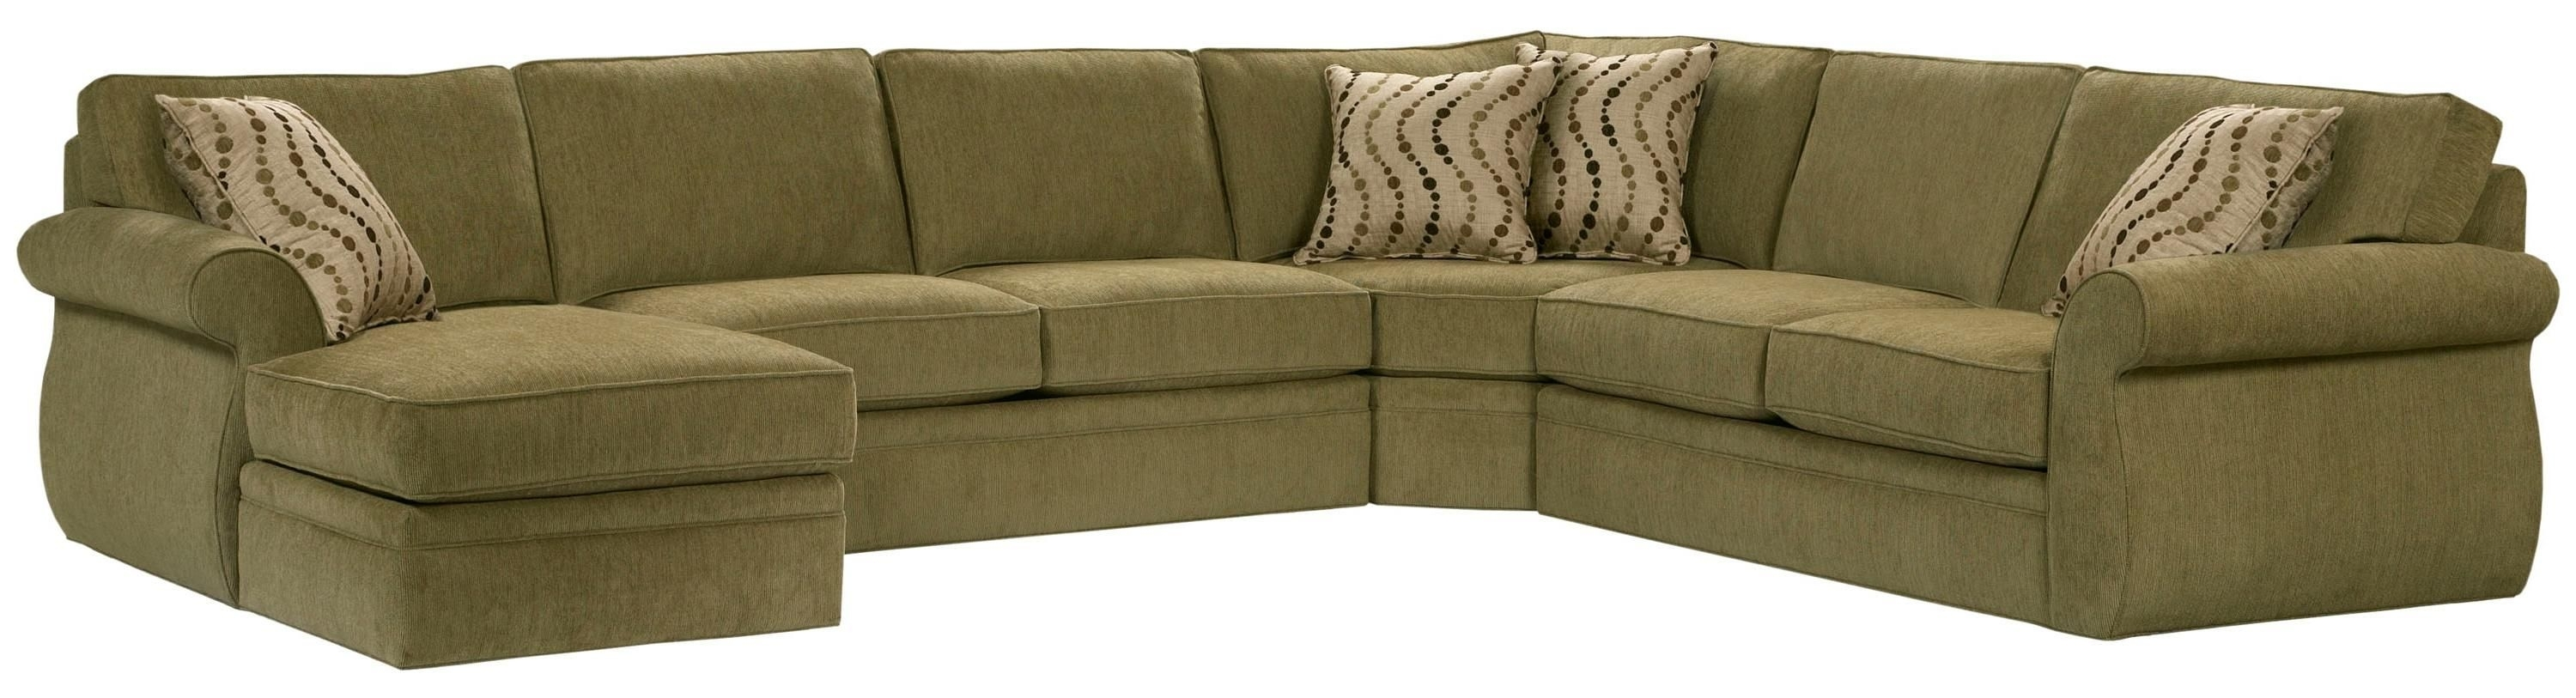 Pin Christina Kingsberry Family Room Ideas Sectional Couch Basement Regarding Lucy Grey 2 Piece Sectionals With Laf Chaise (Image 21 of 25)